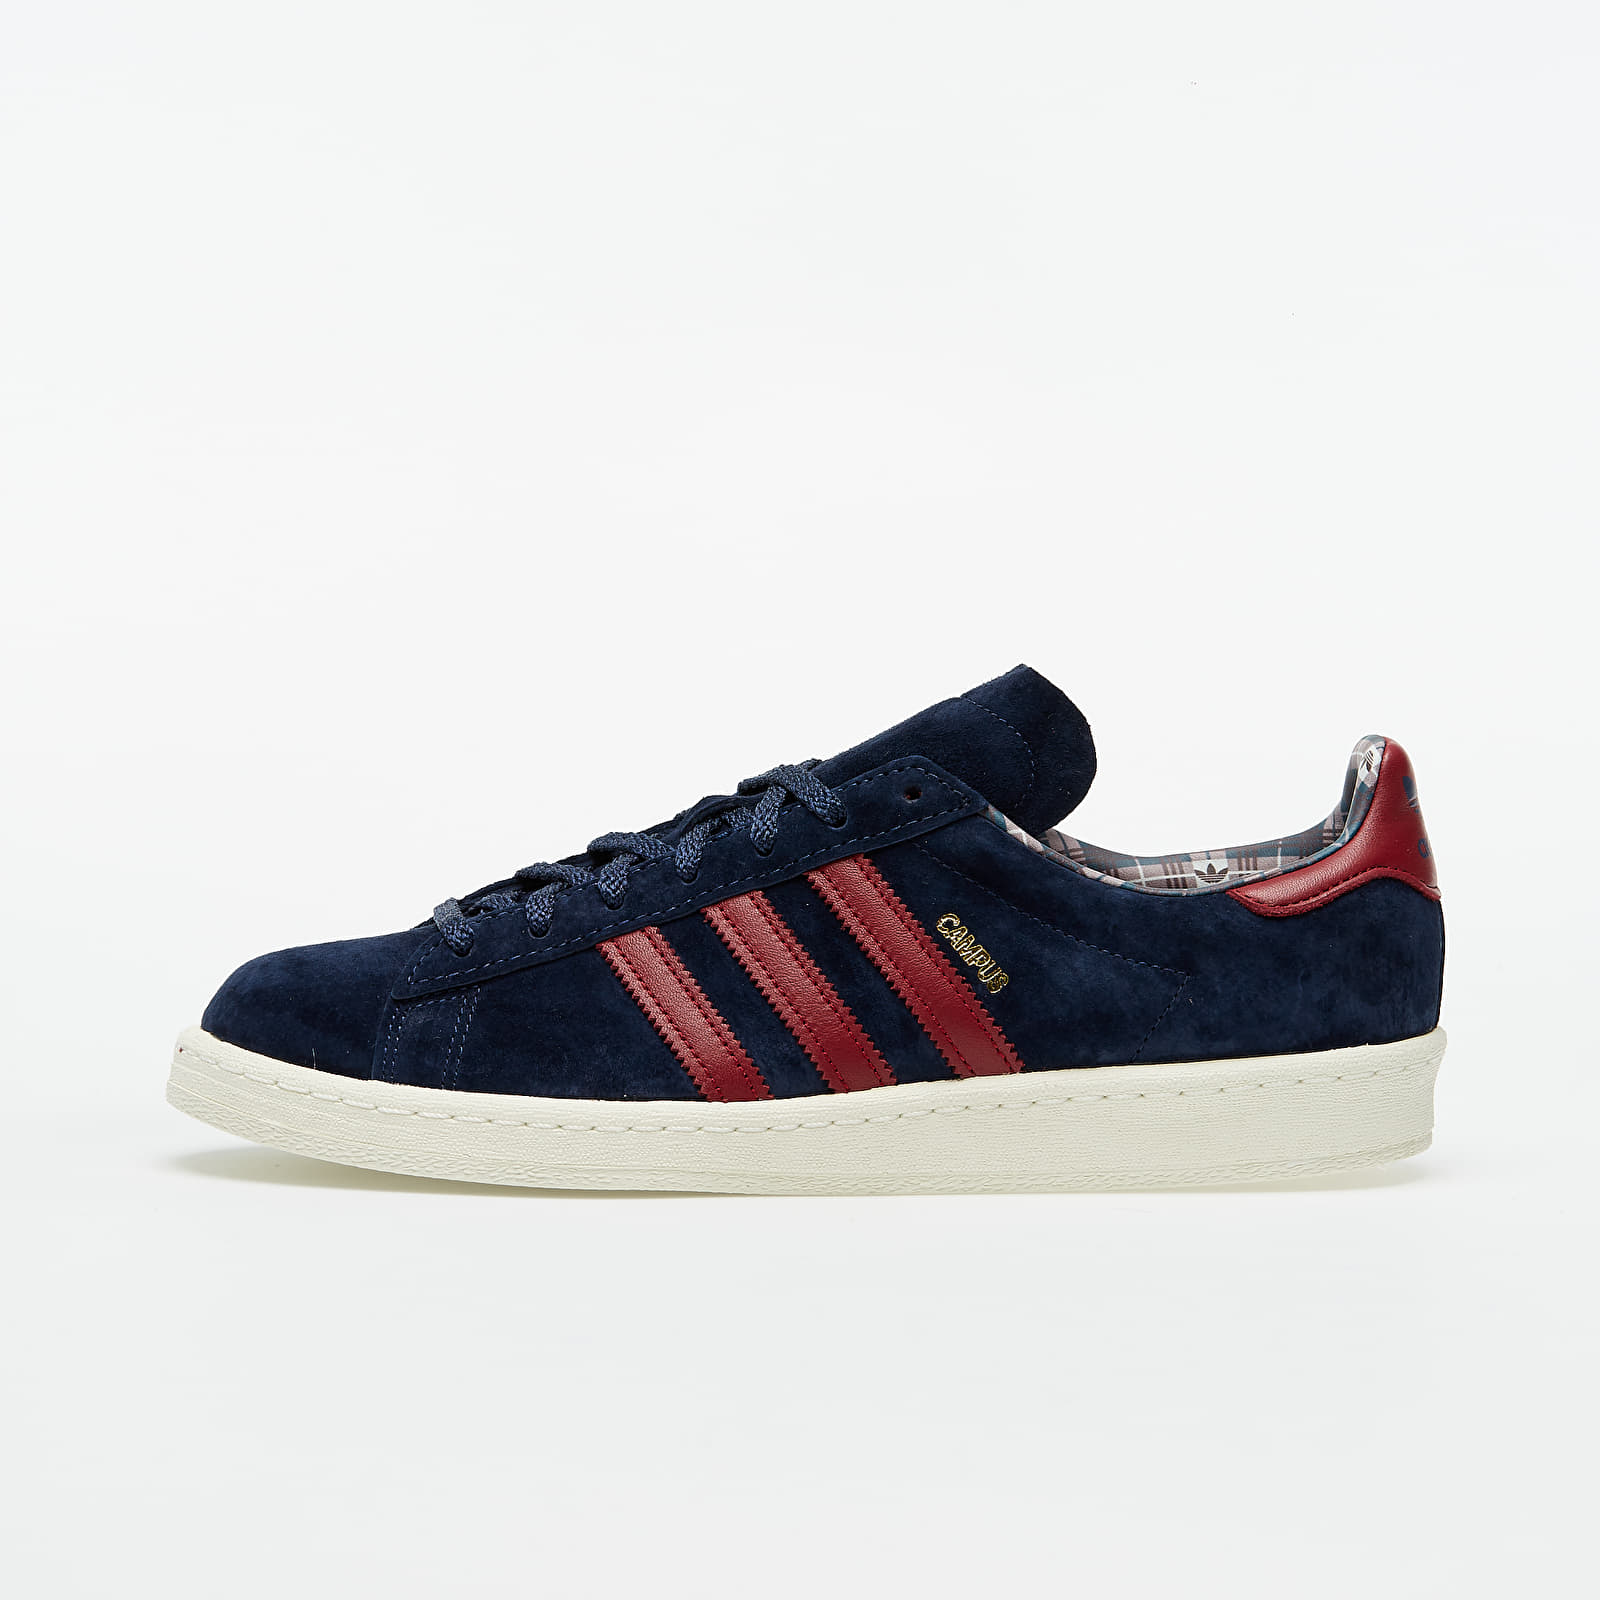 adidas Campus 80s Off White/ Core Burgundy/ Mesa EUR 41 1/3